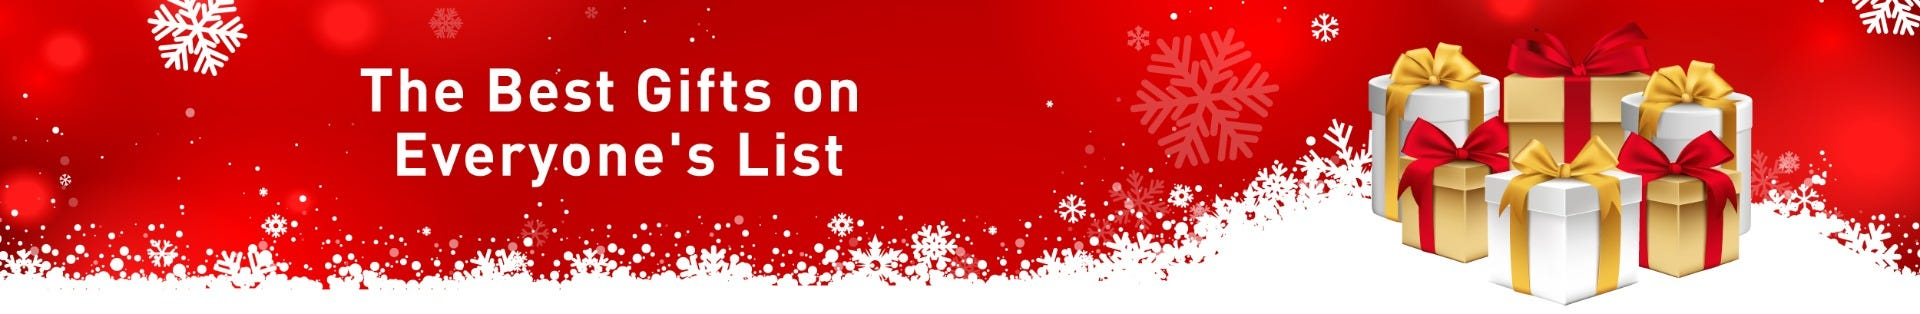 Gift Guide Holiday Header